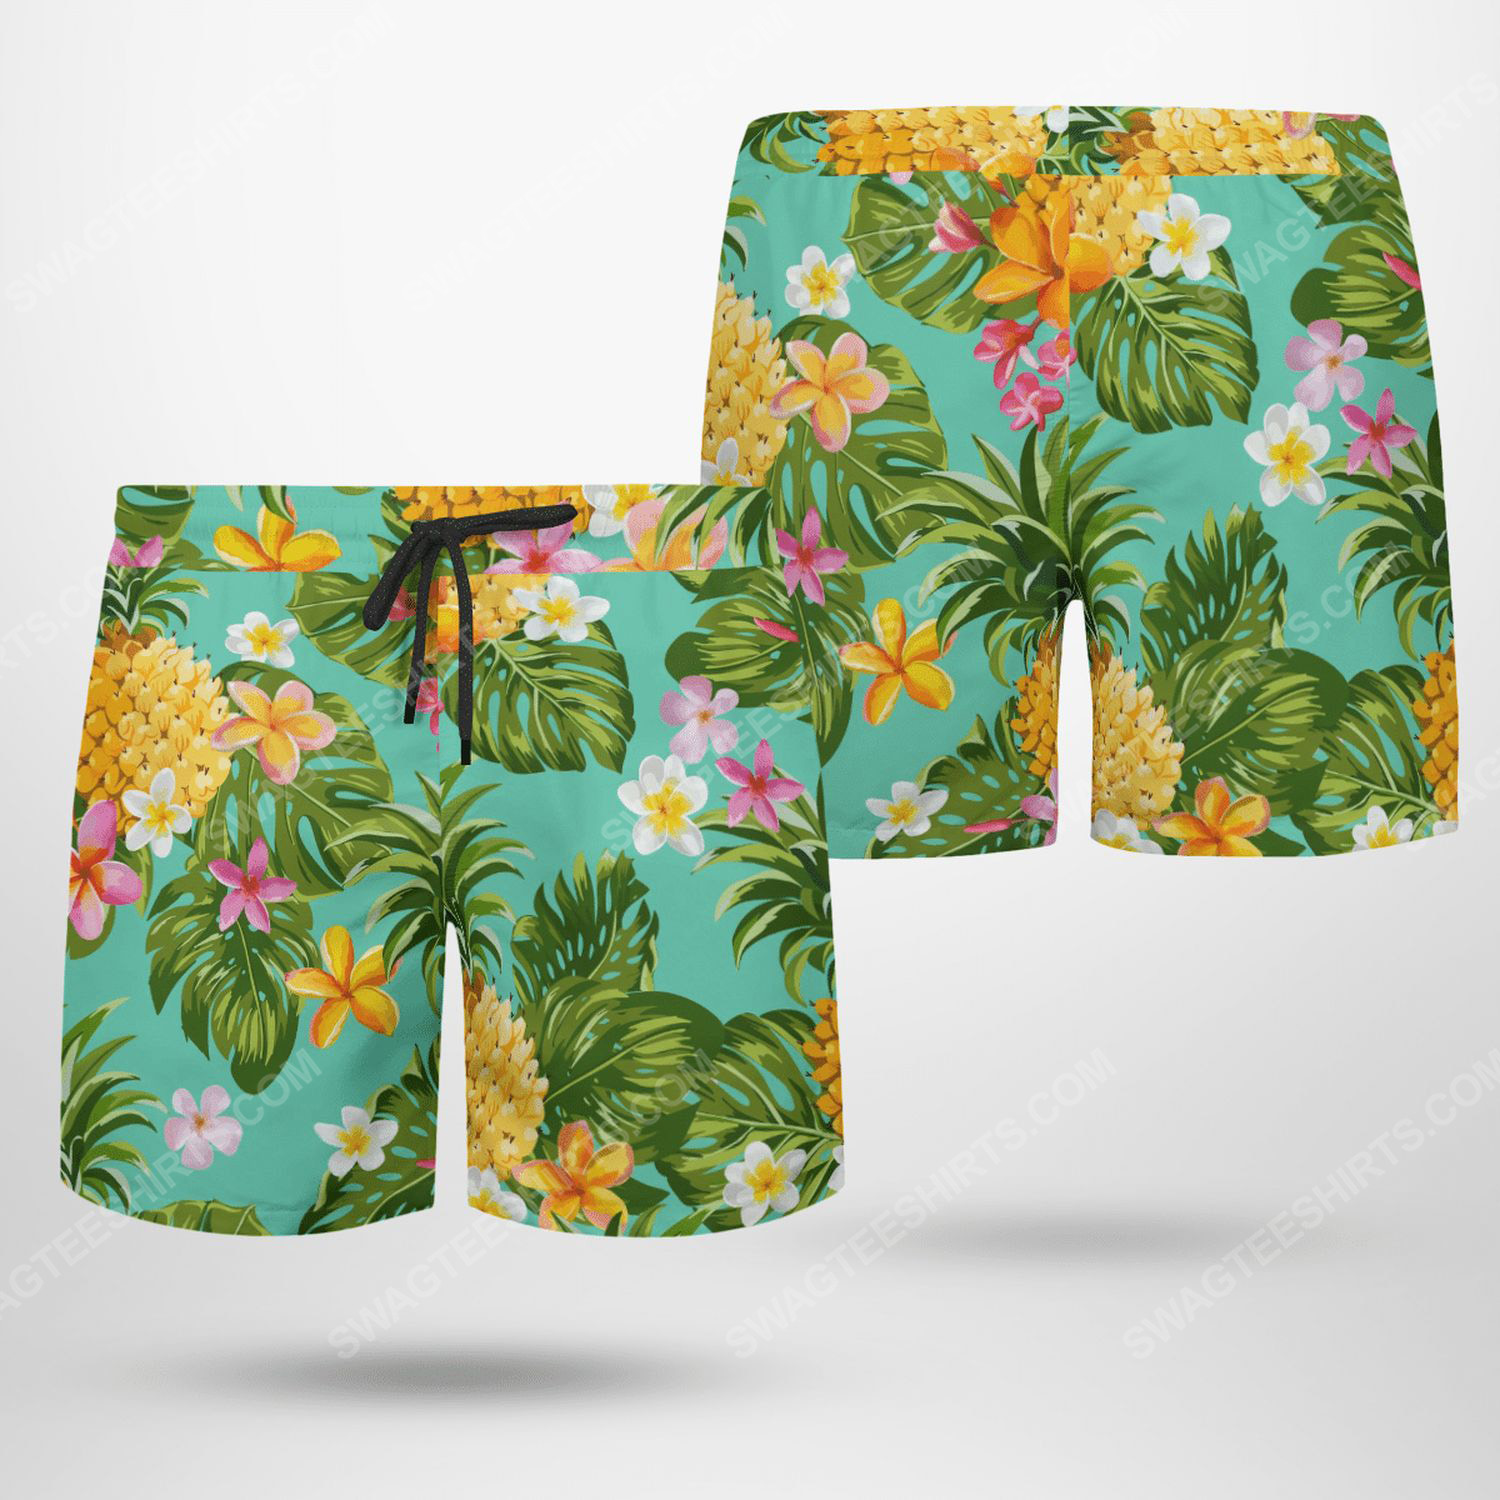 Fruits and flower tropical beach shorts - Copy